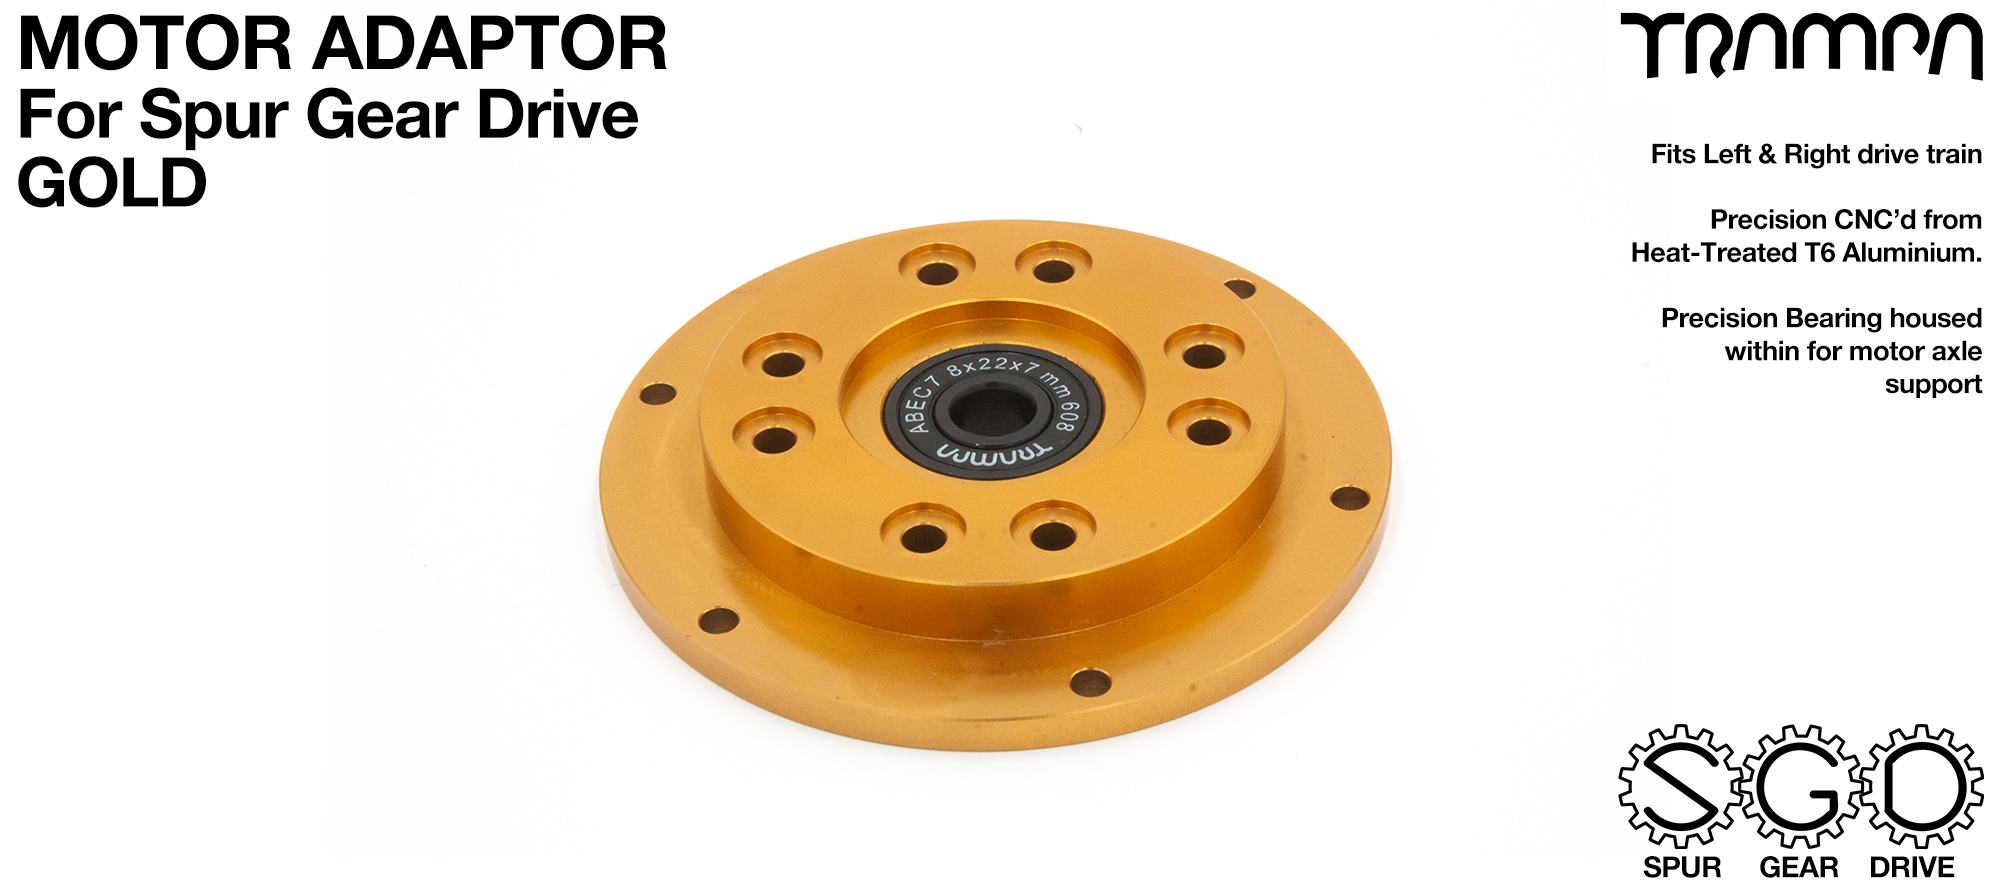 MkII Spur Gear Drive Motor Adaptor GOLD